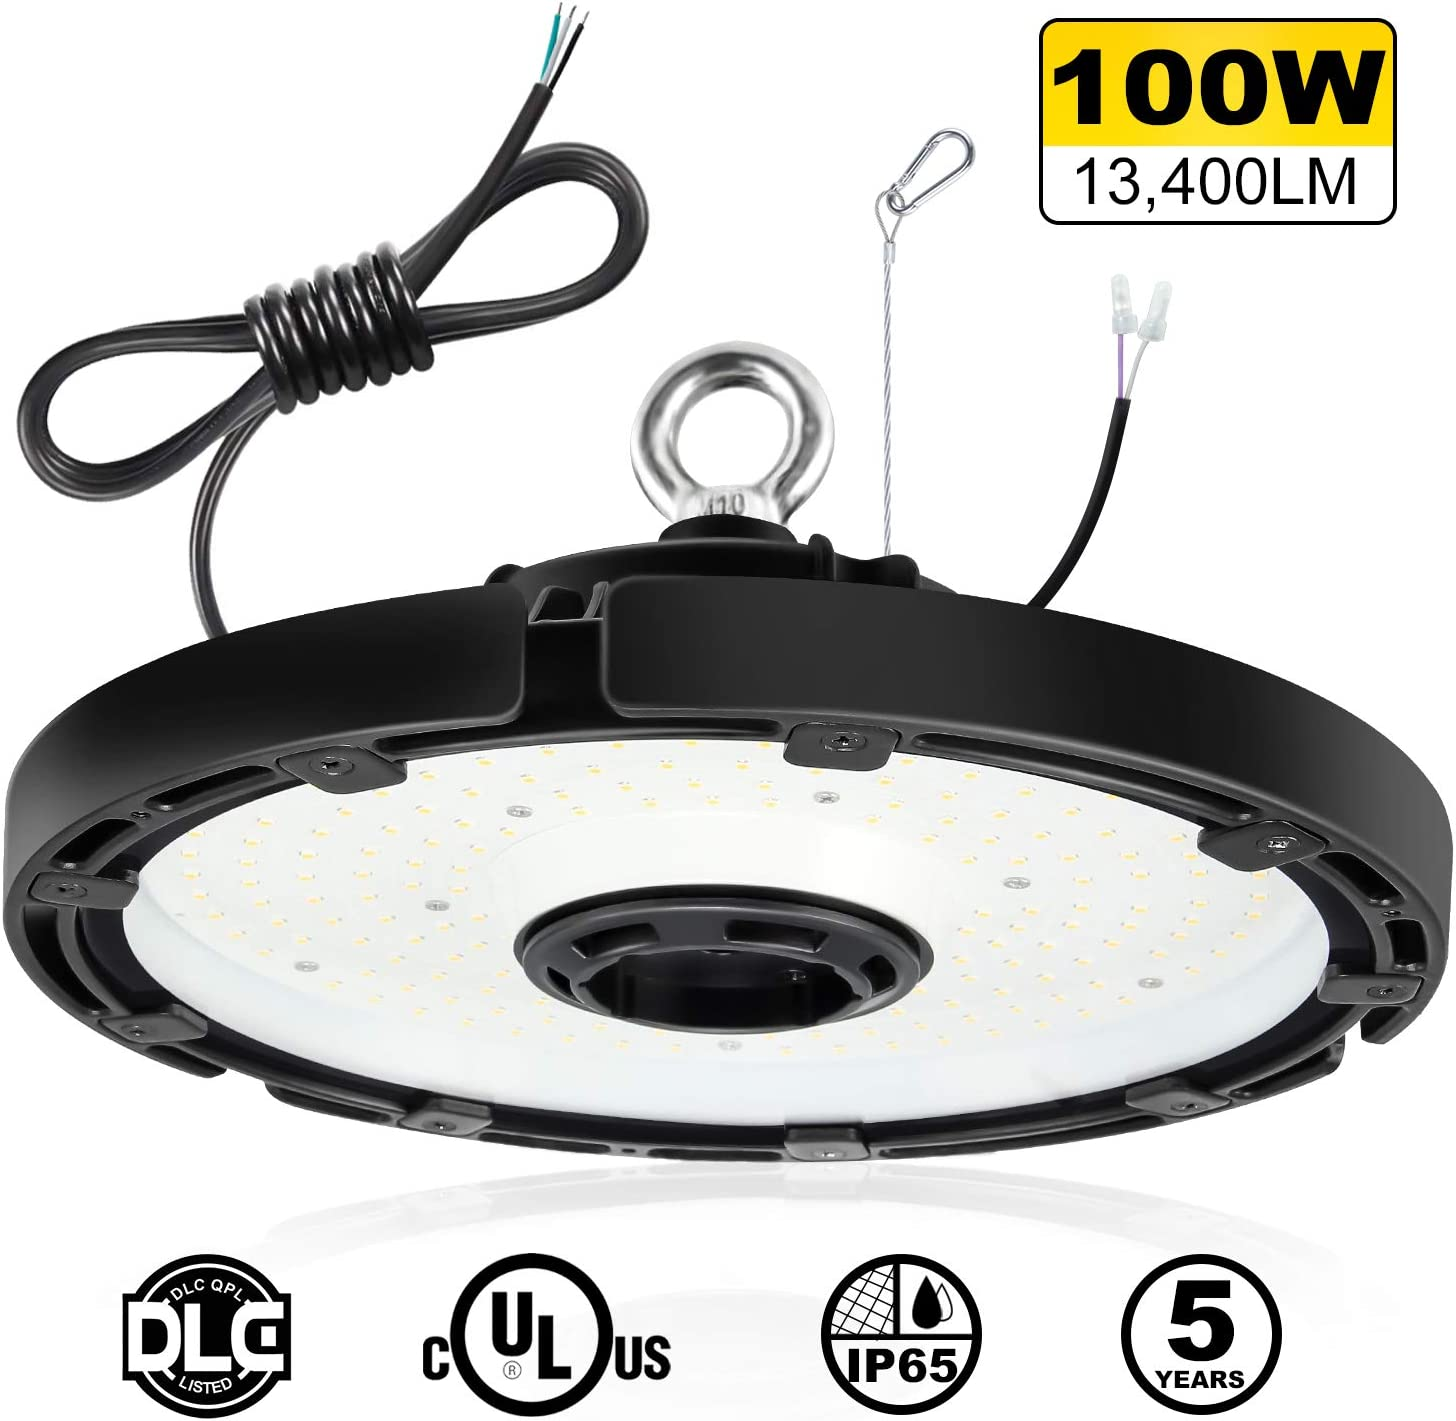 LED High Bay Light UL DLC Listed 100W Dimmable UFO High Bay Lights 5000K 14000Lm Super Bright Commercial Warehouse Lighting Fixture with 5ft Cable and Durable Safety Rope 350W MH//HPS Equivalent